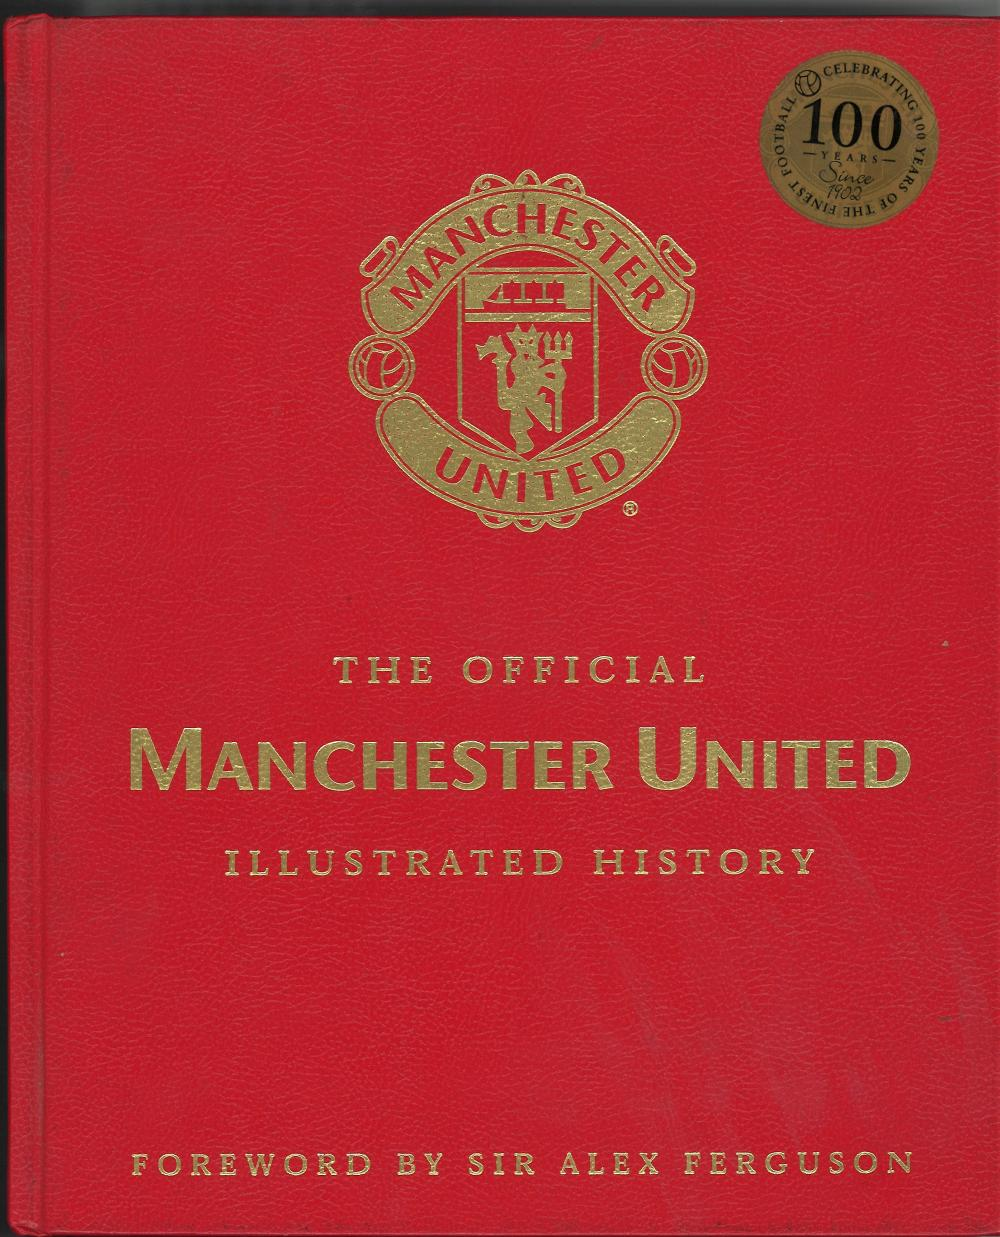 Football Manchester United book titled The Official Manchester United Illustrated History signed